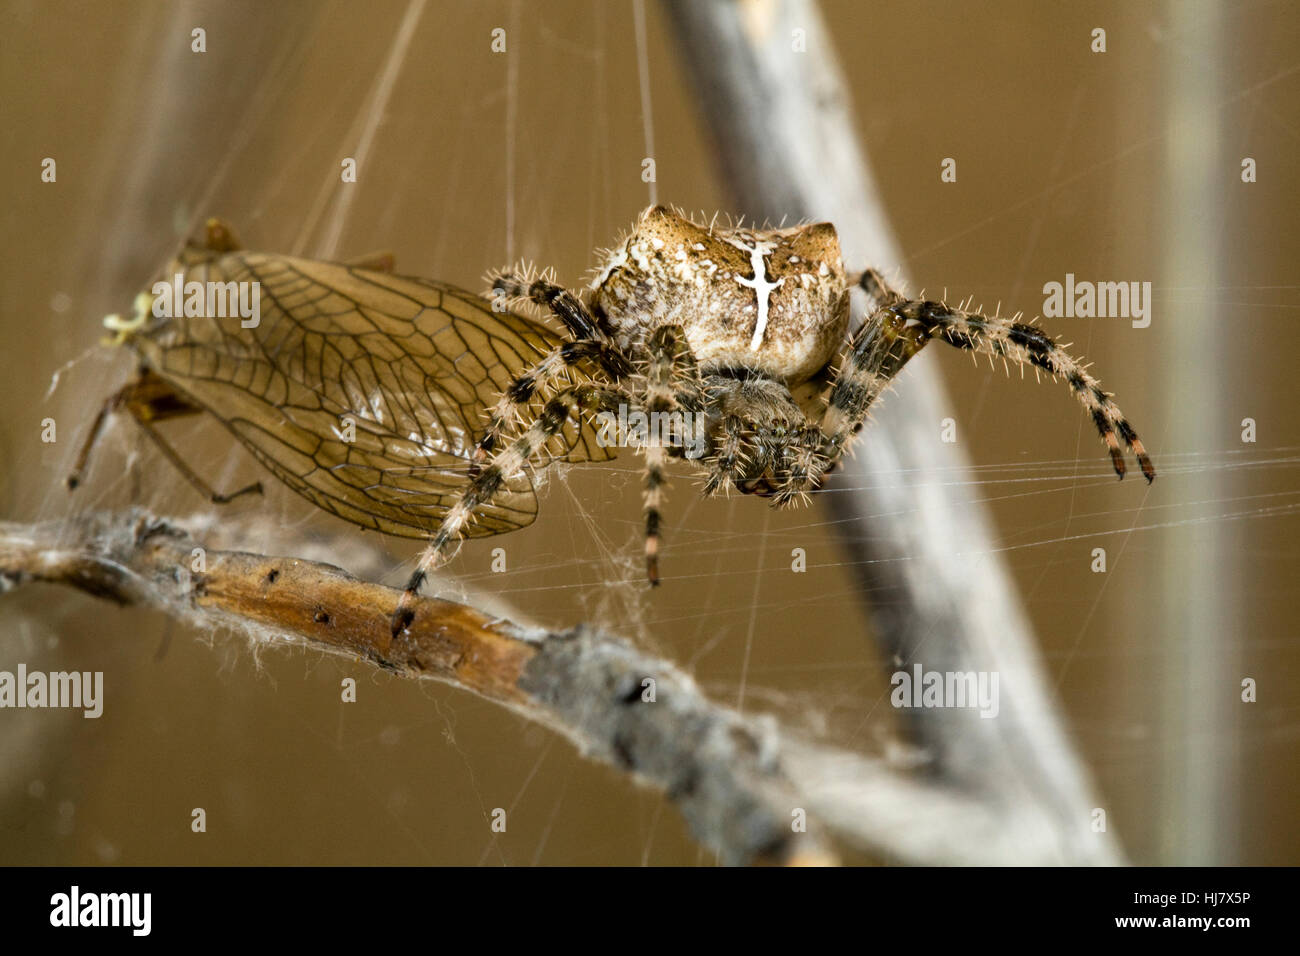 A cross orbweaver spider, Araneus diadematus, in her web with a golden stonefly she captured. - Stock Image